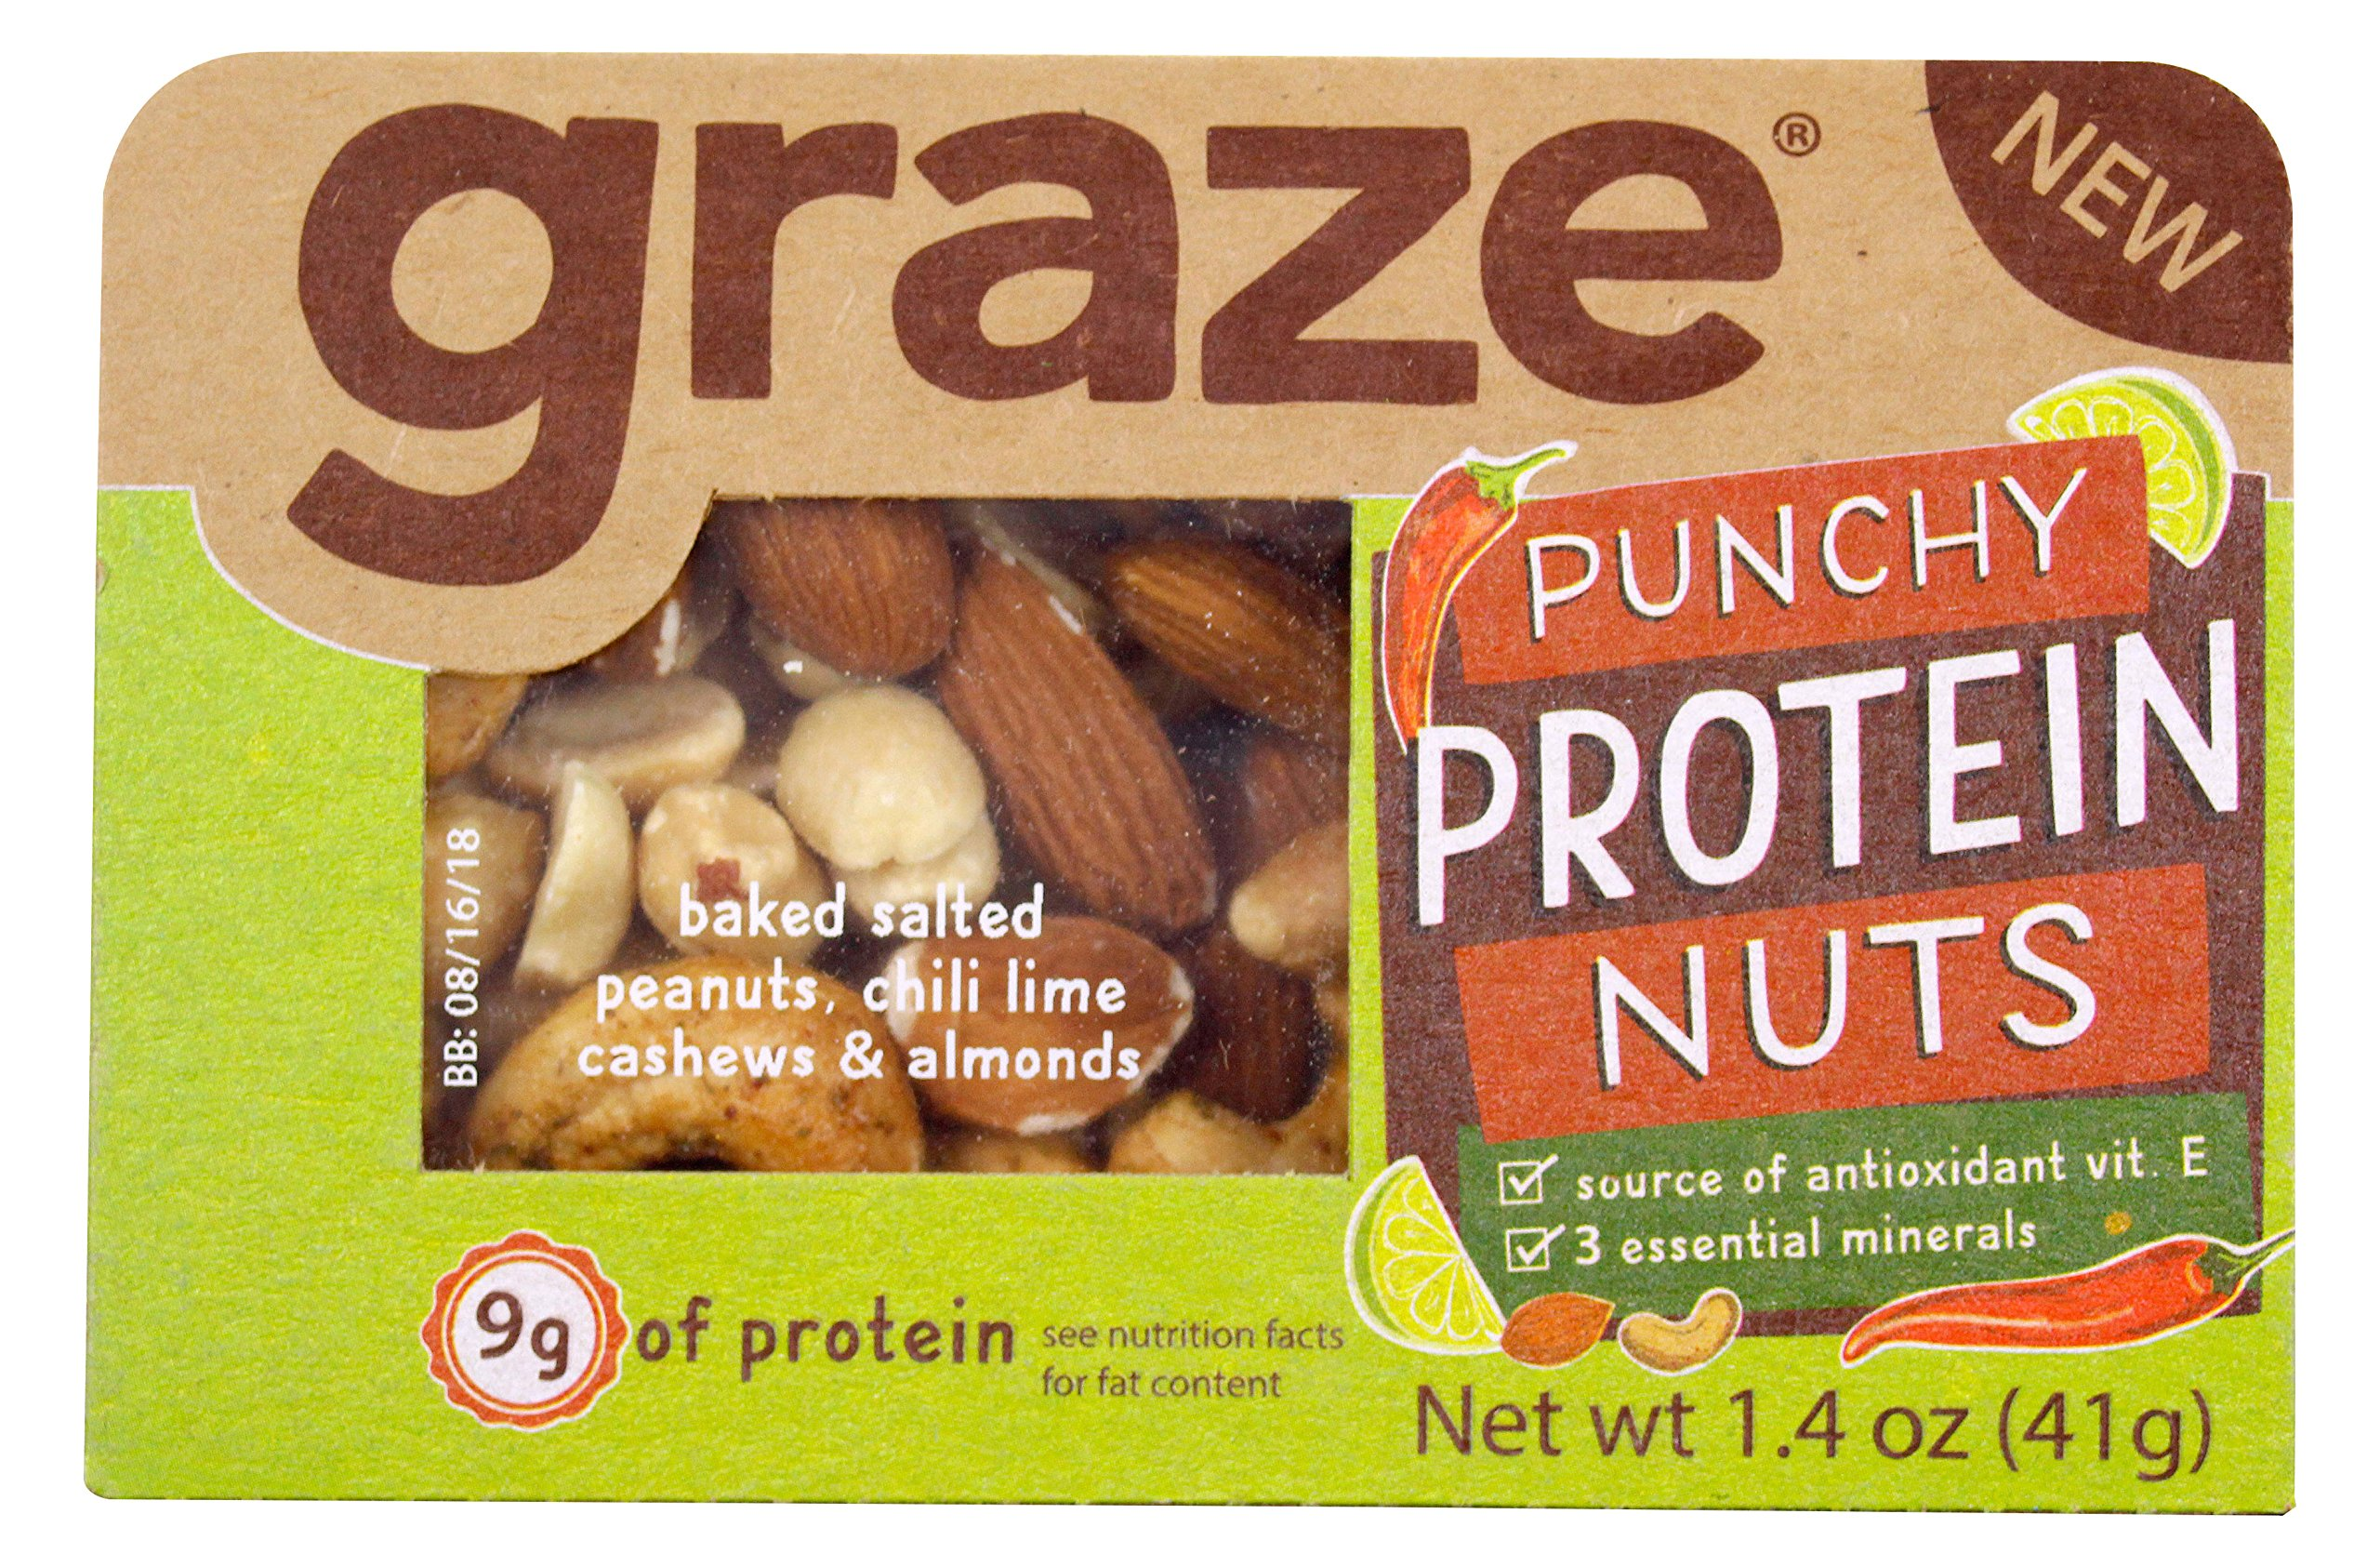 Graze Natural Punchy Protein Nuts Snack Mix with Roasted Chili Lime Cashews, Blanched Peanuts and Raw Almonds, Healthy, Natural Nut Trail Mix, 1.4 Ounce Box, 9 Pack